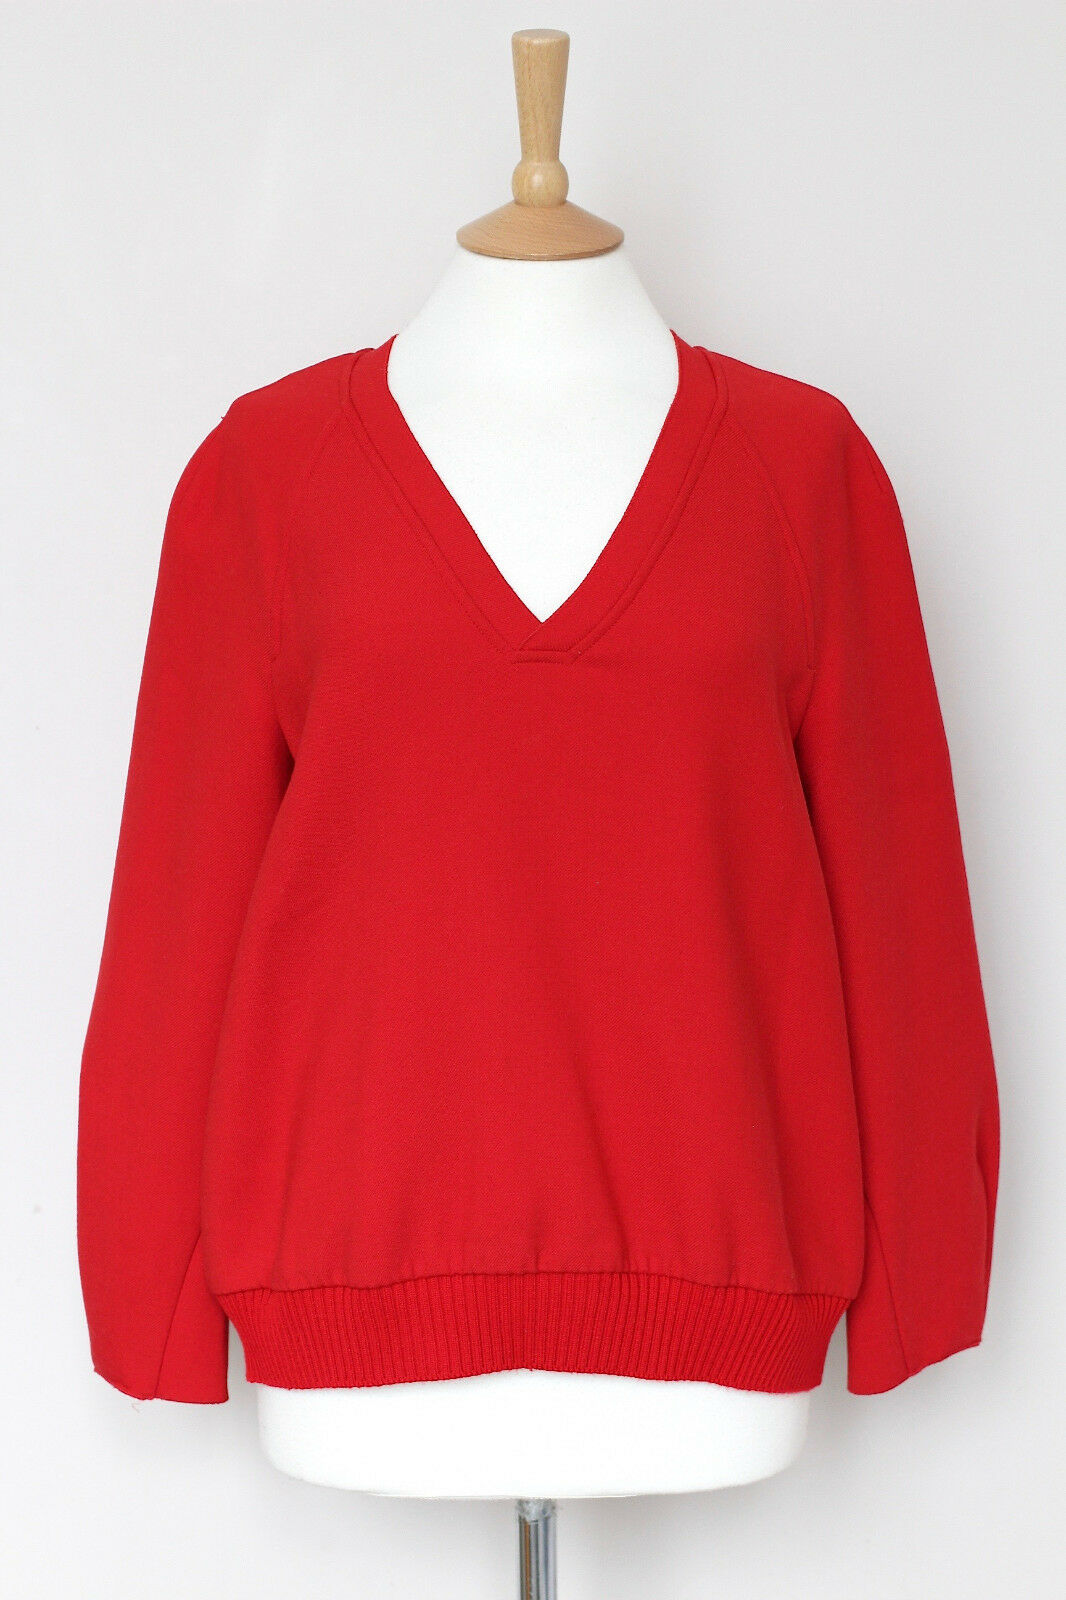 JIL SANDER Navy red wool ribbed jumper sweater UK8 US4 IT40 FR36 small